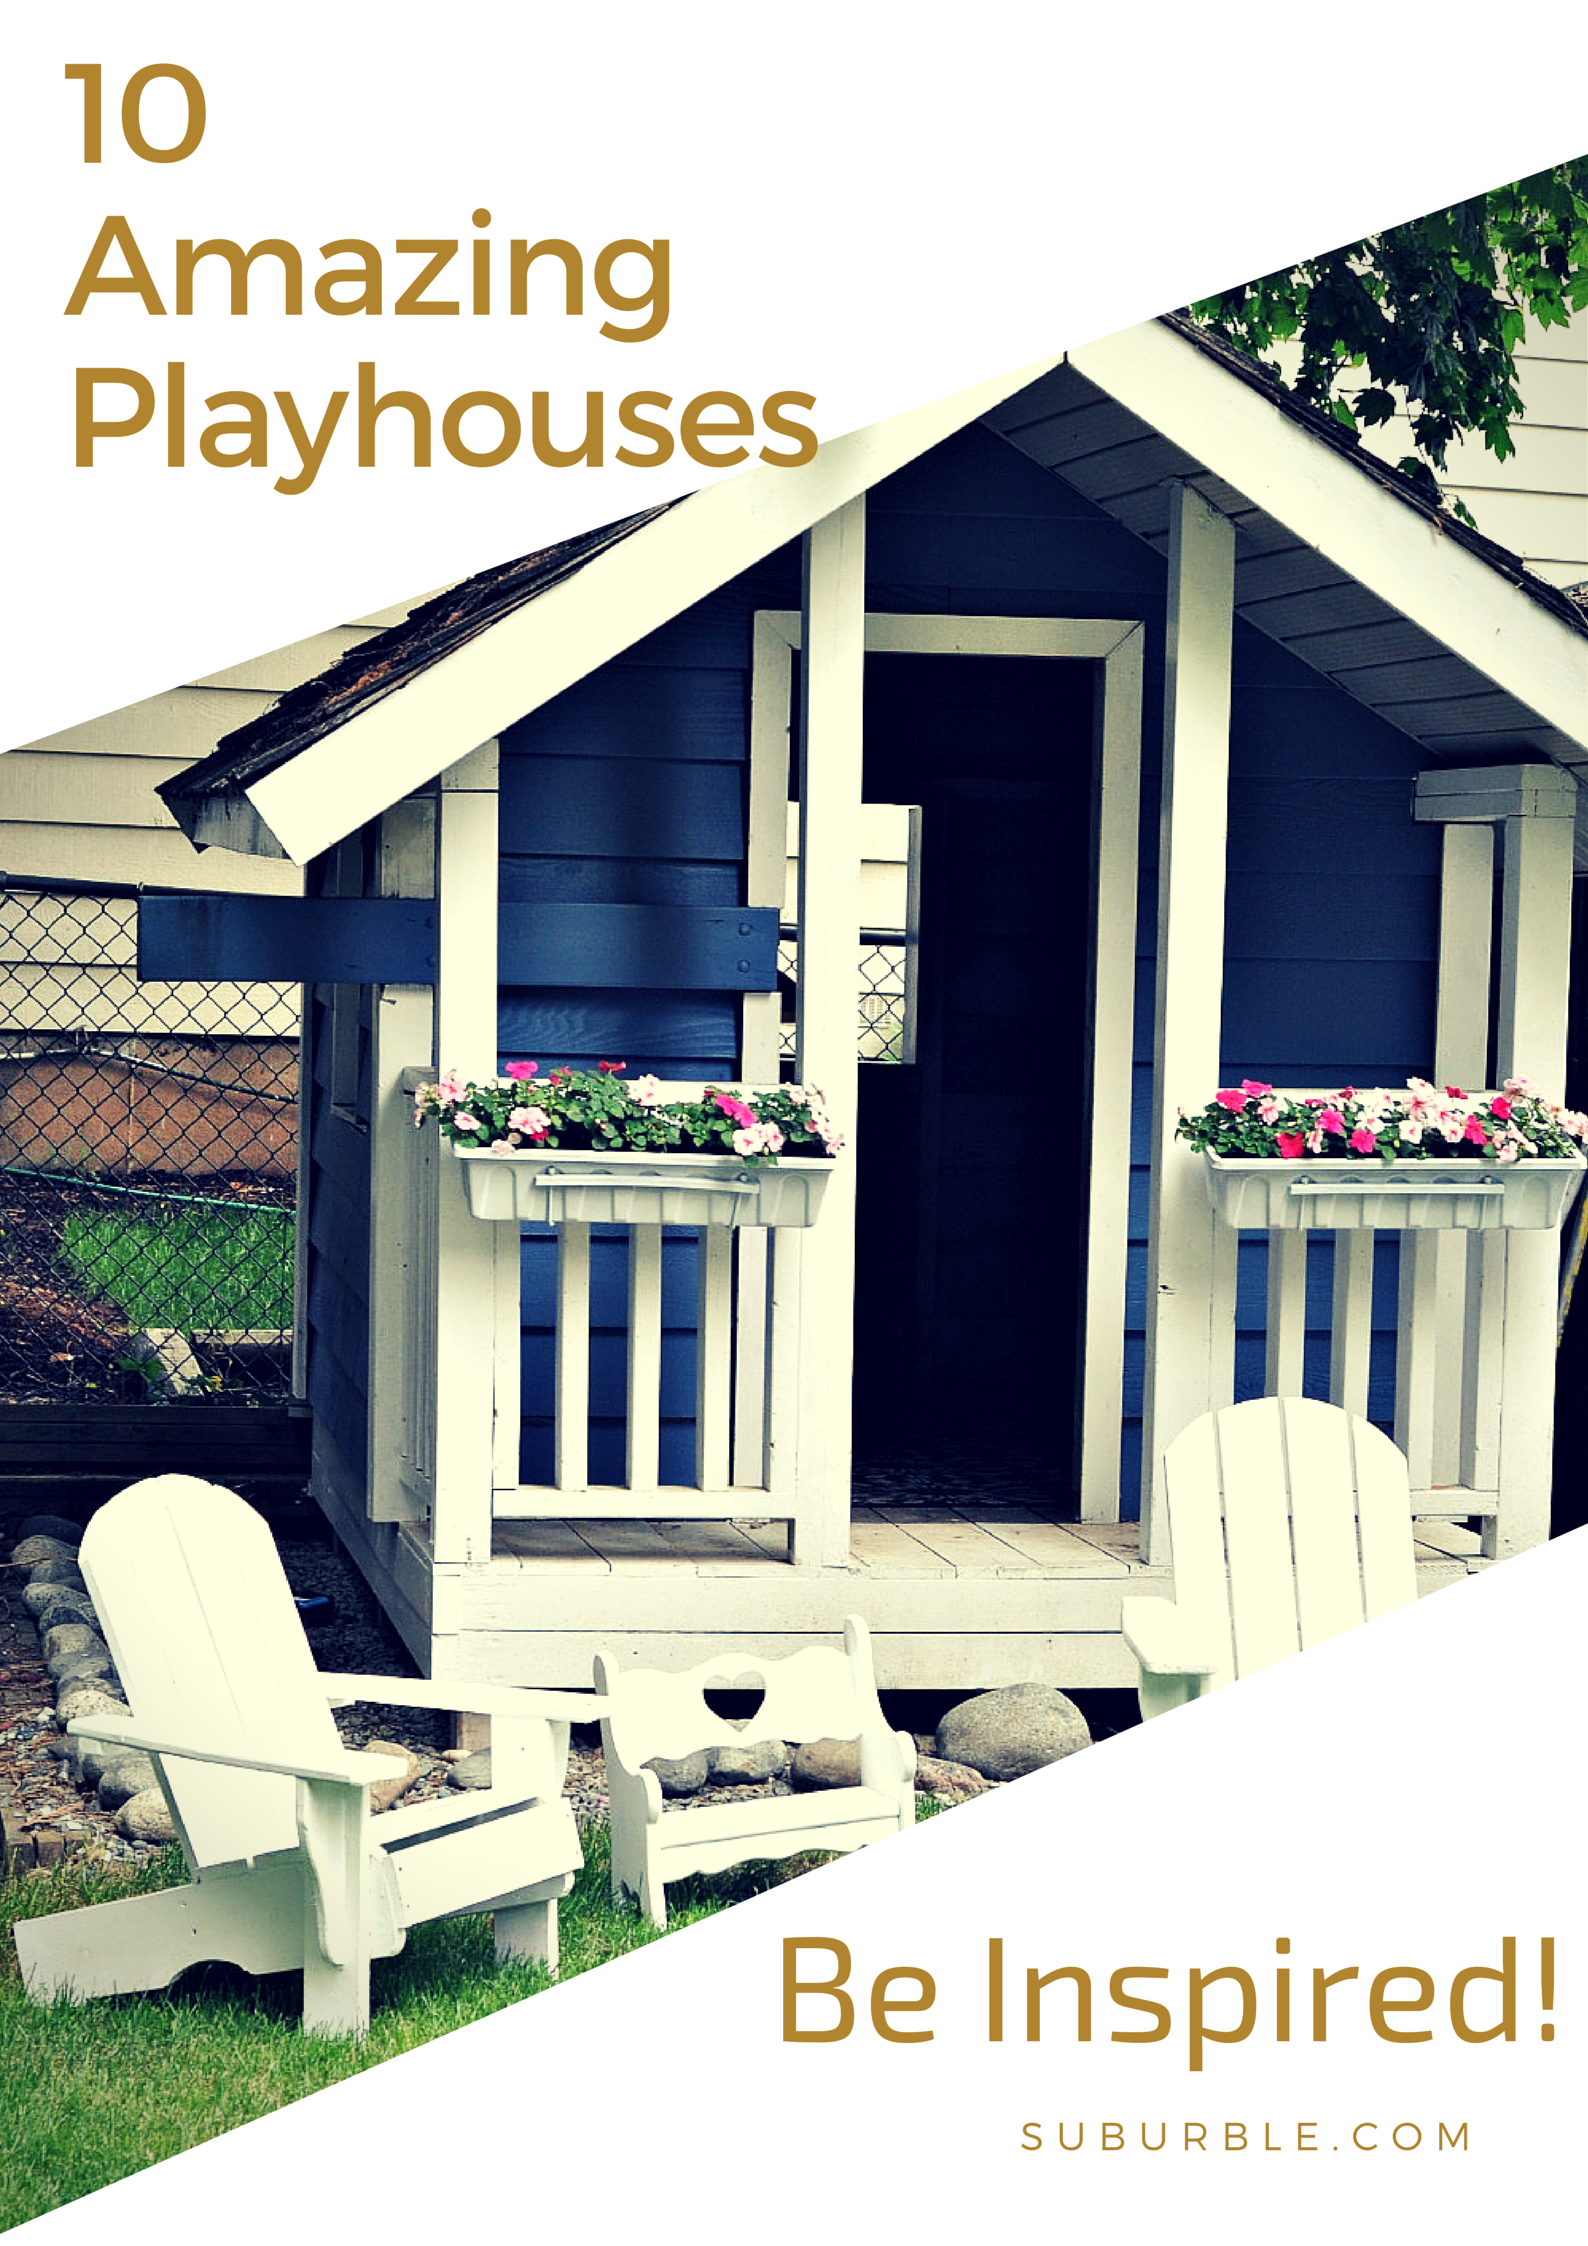 10 Amazing Playhouse Projects that will change how your kids play in the backyard!